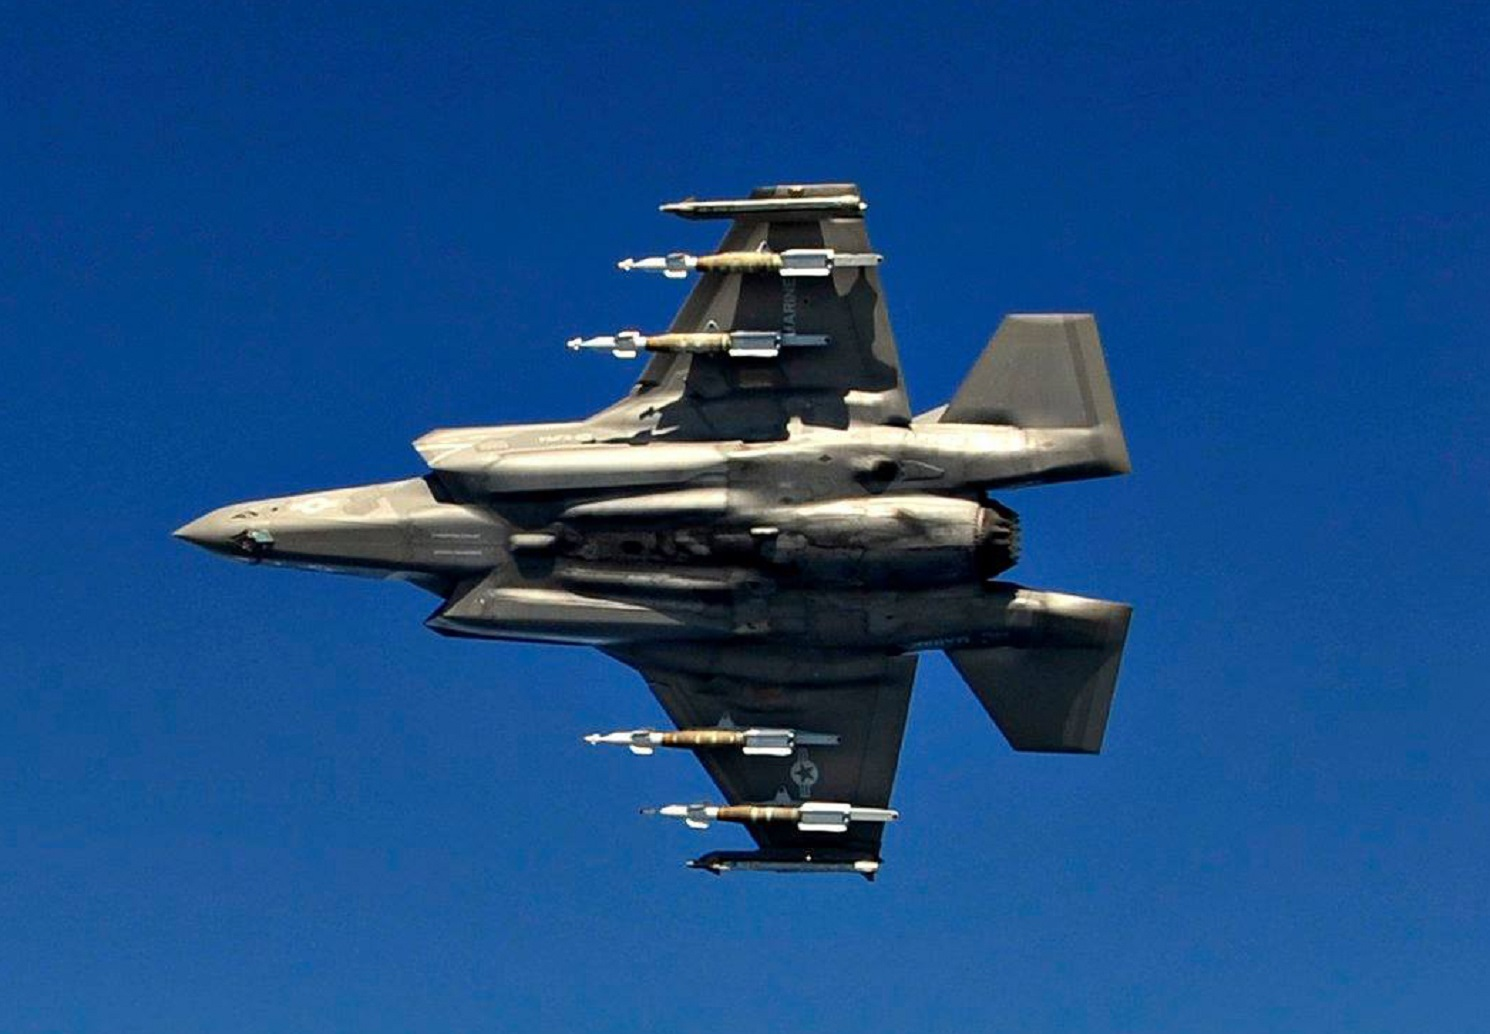 The F-35 Stealth Fighter Can Turn Into Beast Mode (Armed with Hypersonic Missiles)